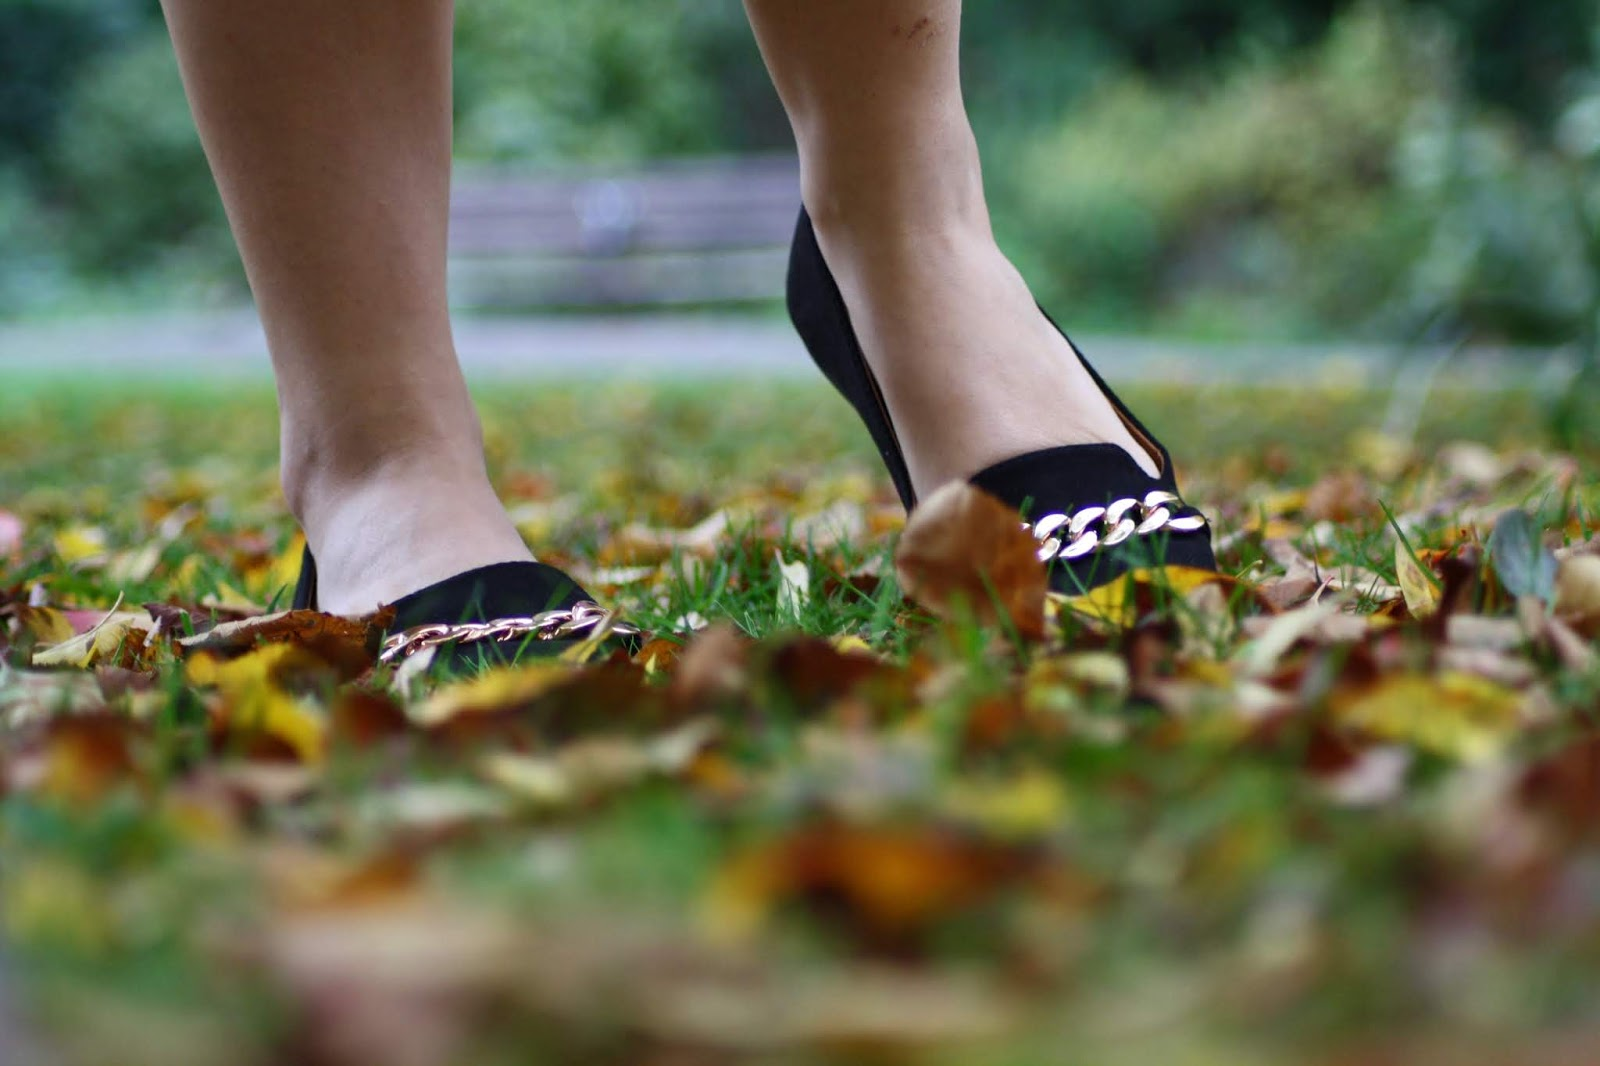 close up of black ballet flat shoes with gold chain amongst fallen autumn leaves